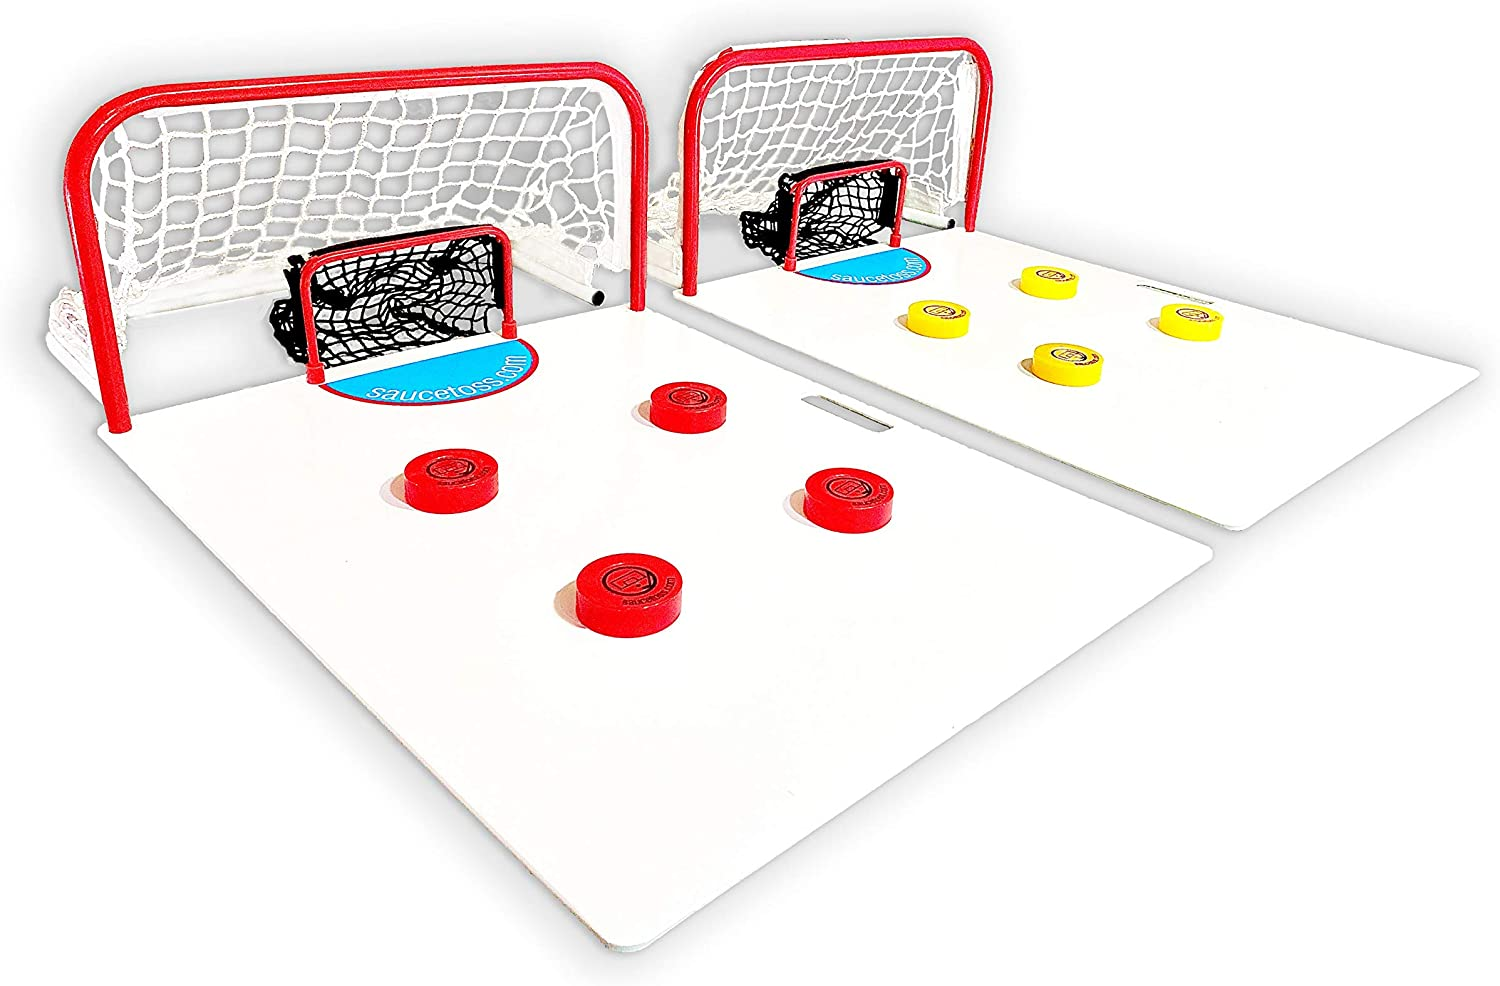 Sauce Toss: The Premium Hockey Sauce Pass Game for Playing, Passing, Training, Trick Shots and More - Tailgate Friendly and Portable Hockey Game, Supreme